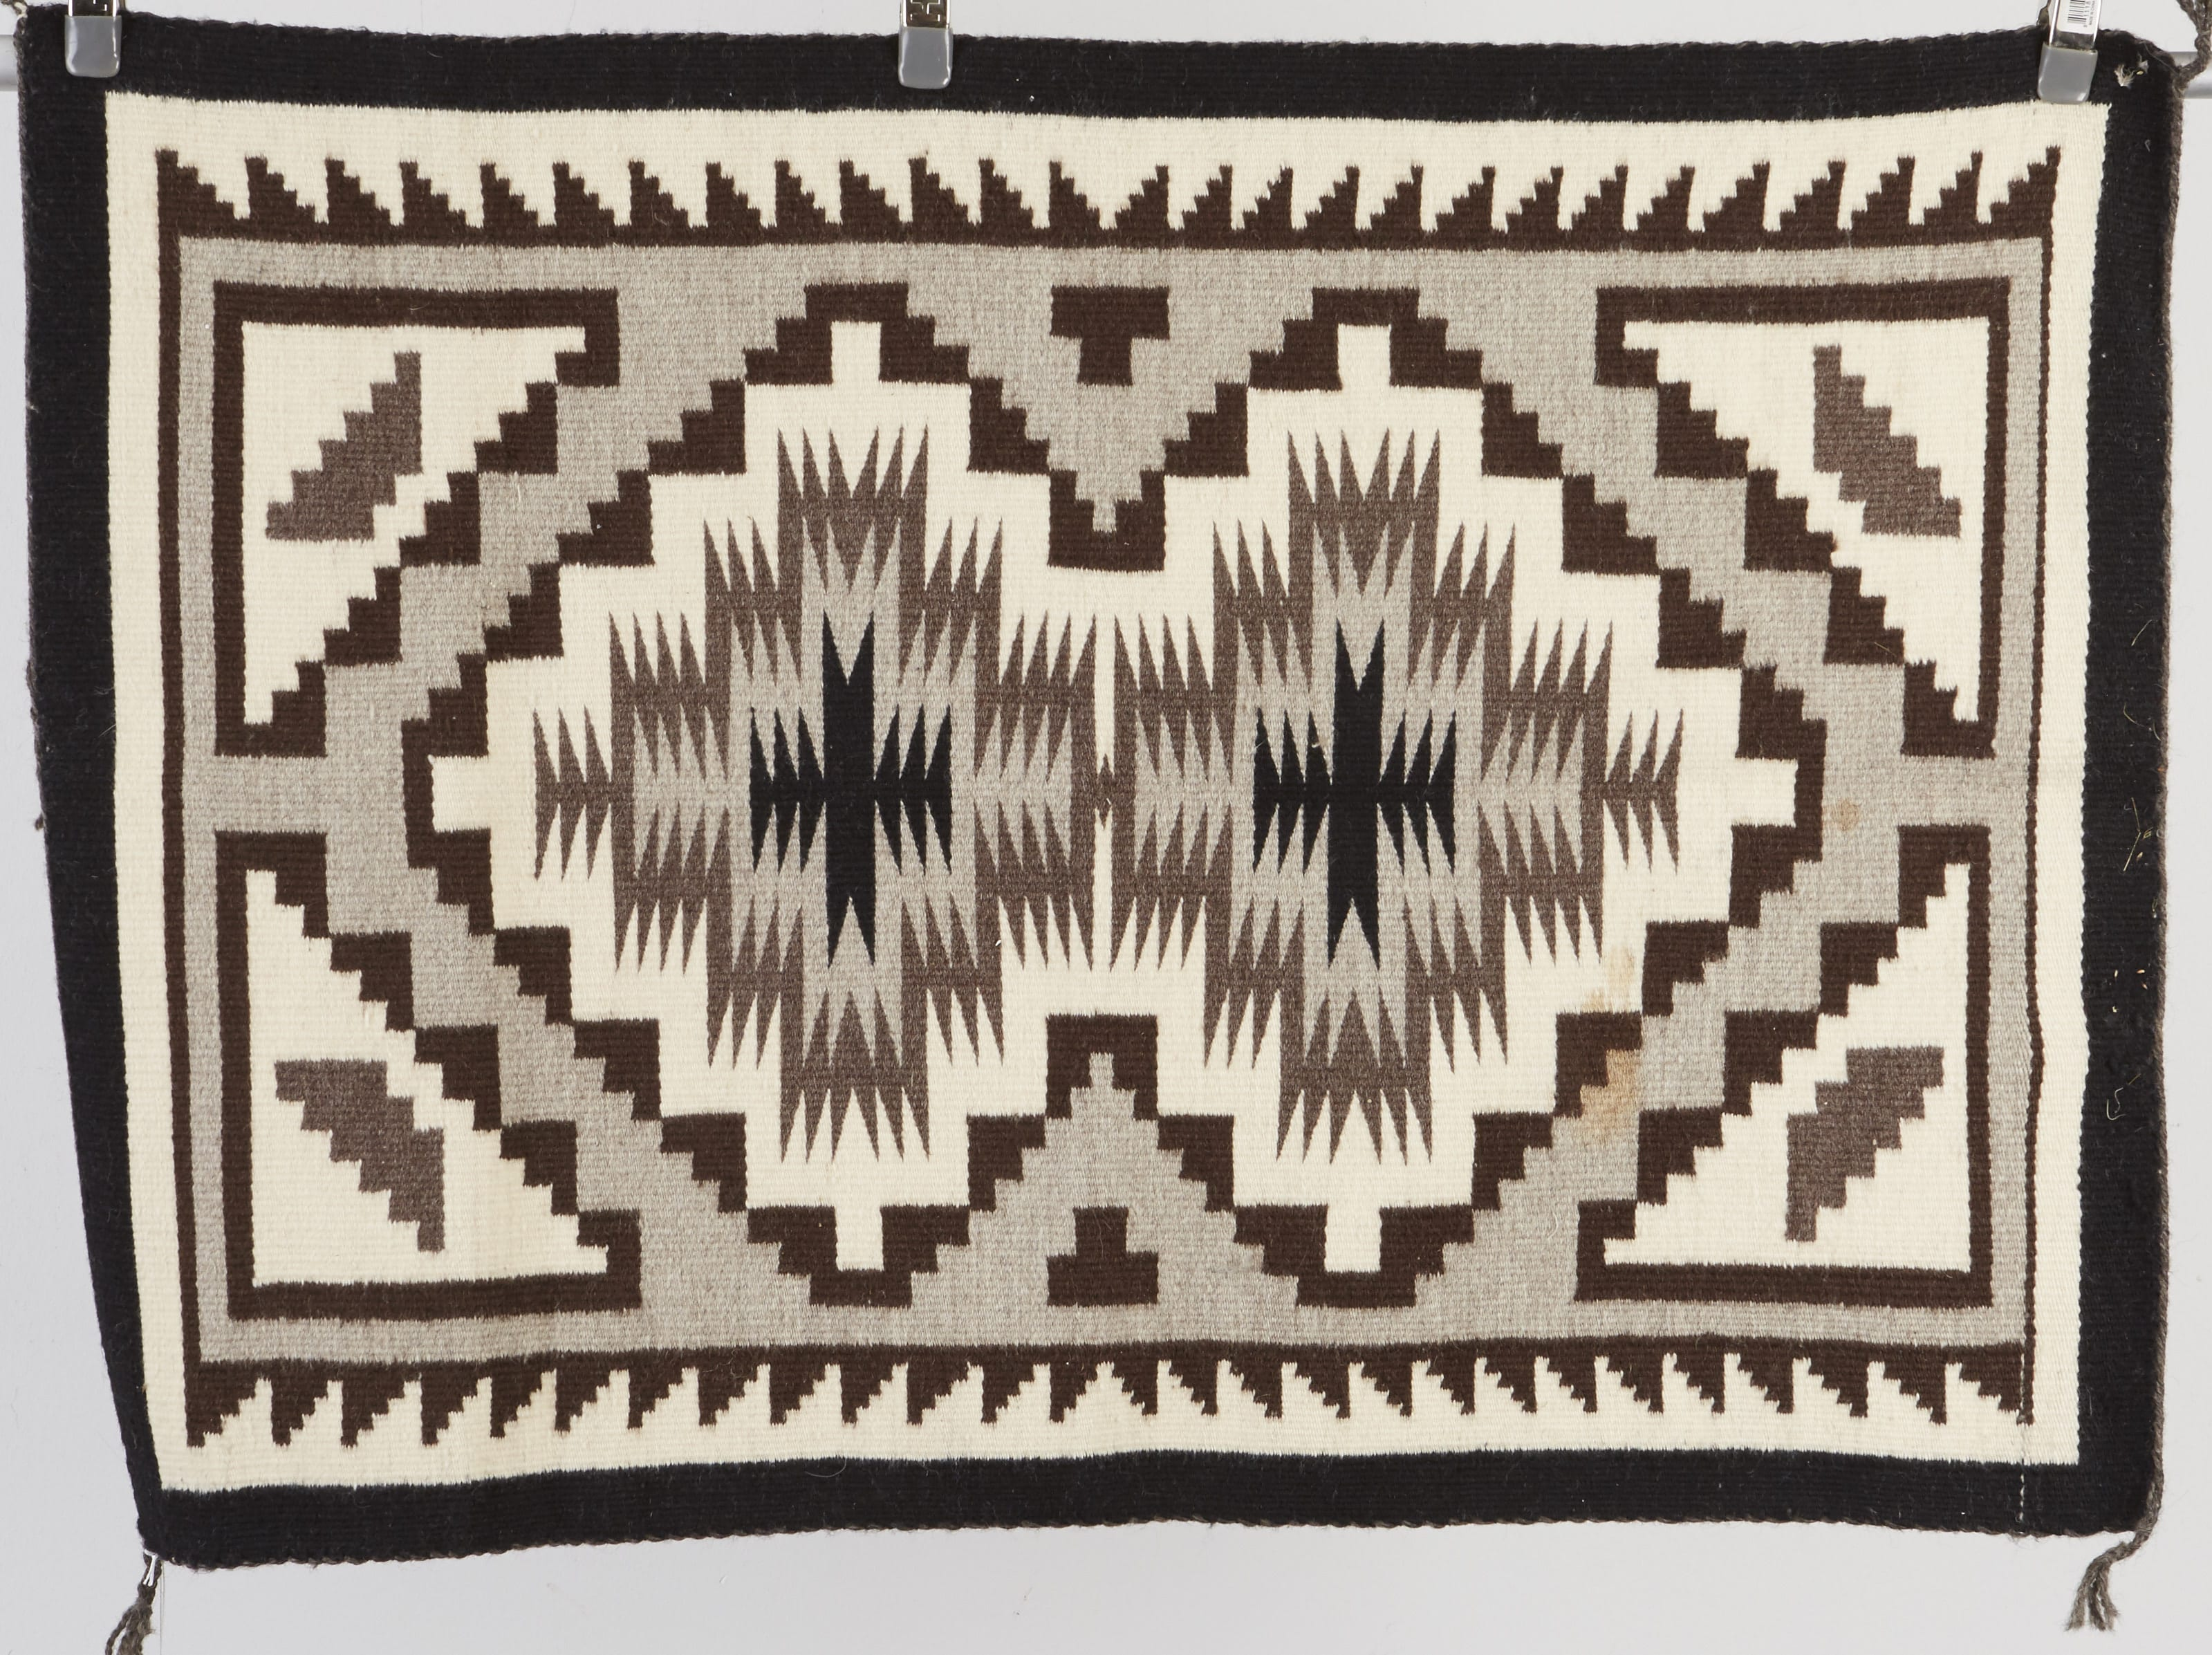 Lot 100: 9 Navajo Rugs Tapestry dated 1950 and later